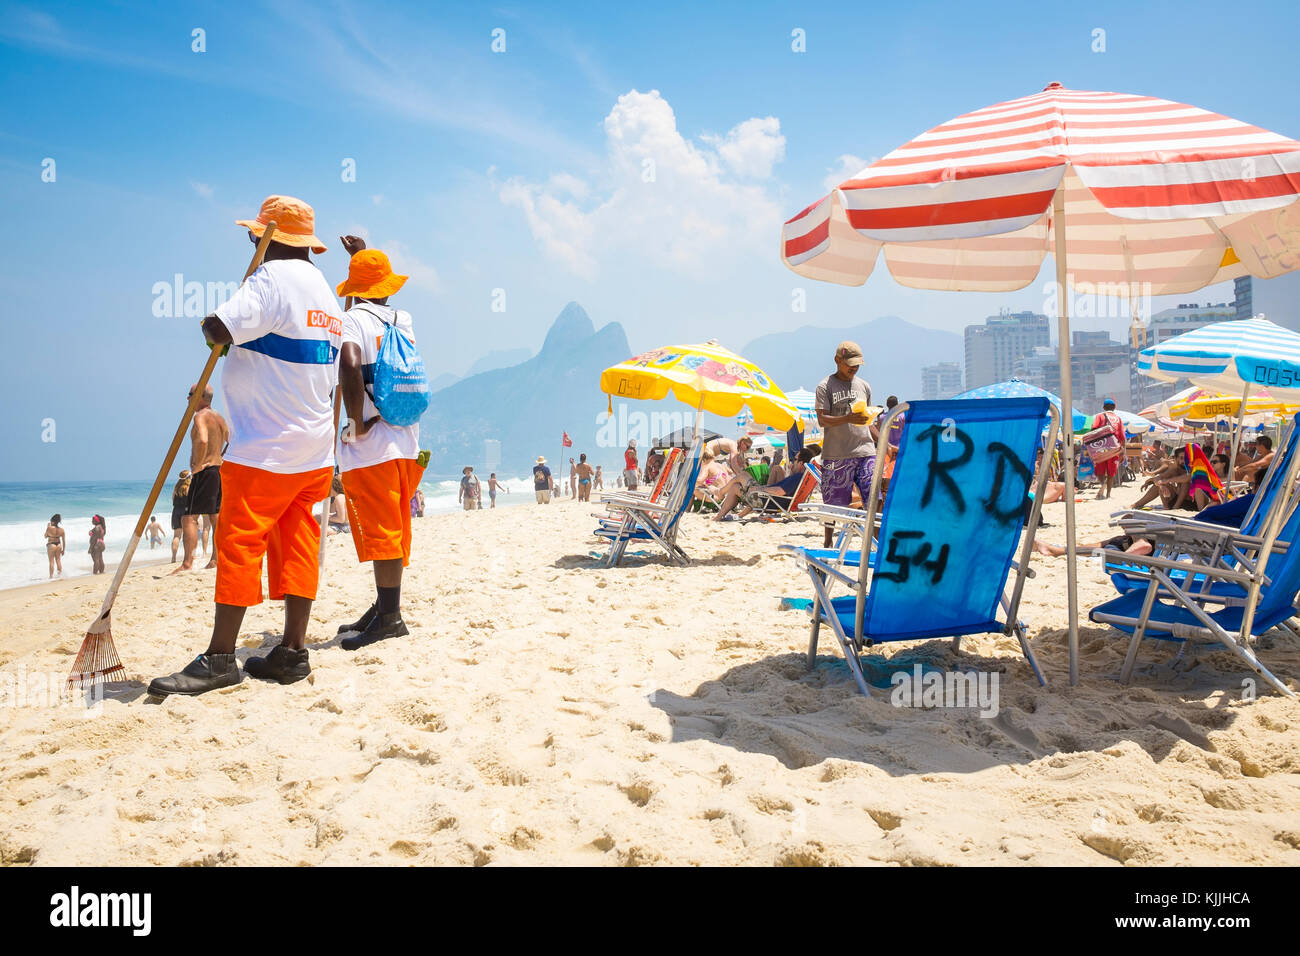 RIO DE JANEIRO - MARCH 06, 2016: Beach cleaners on busy Ipanema Beach with parasols and chairs with two brothers - Stock Image